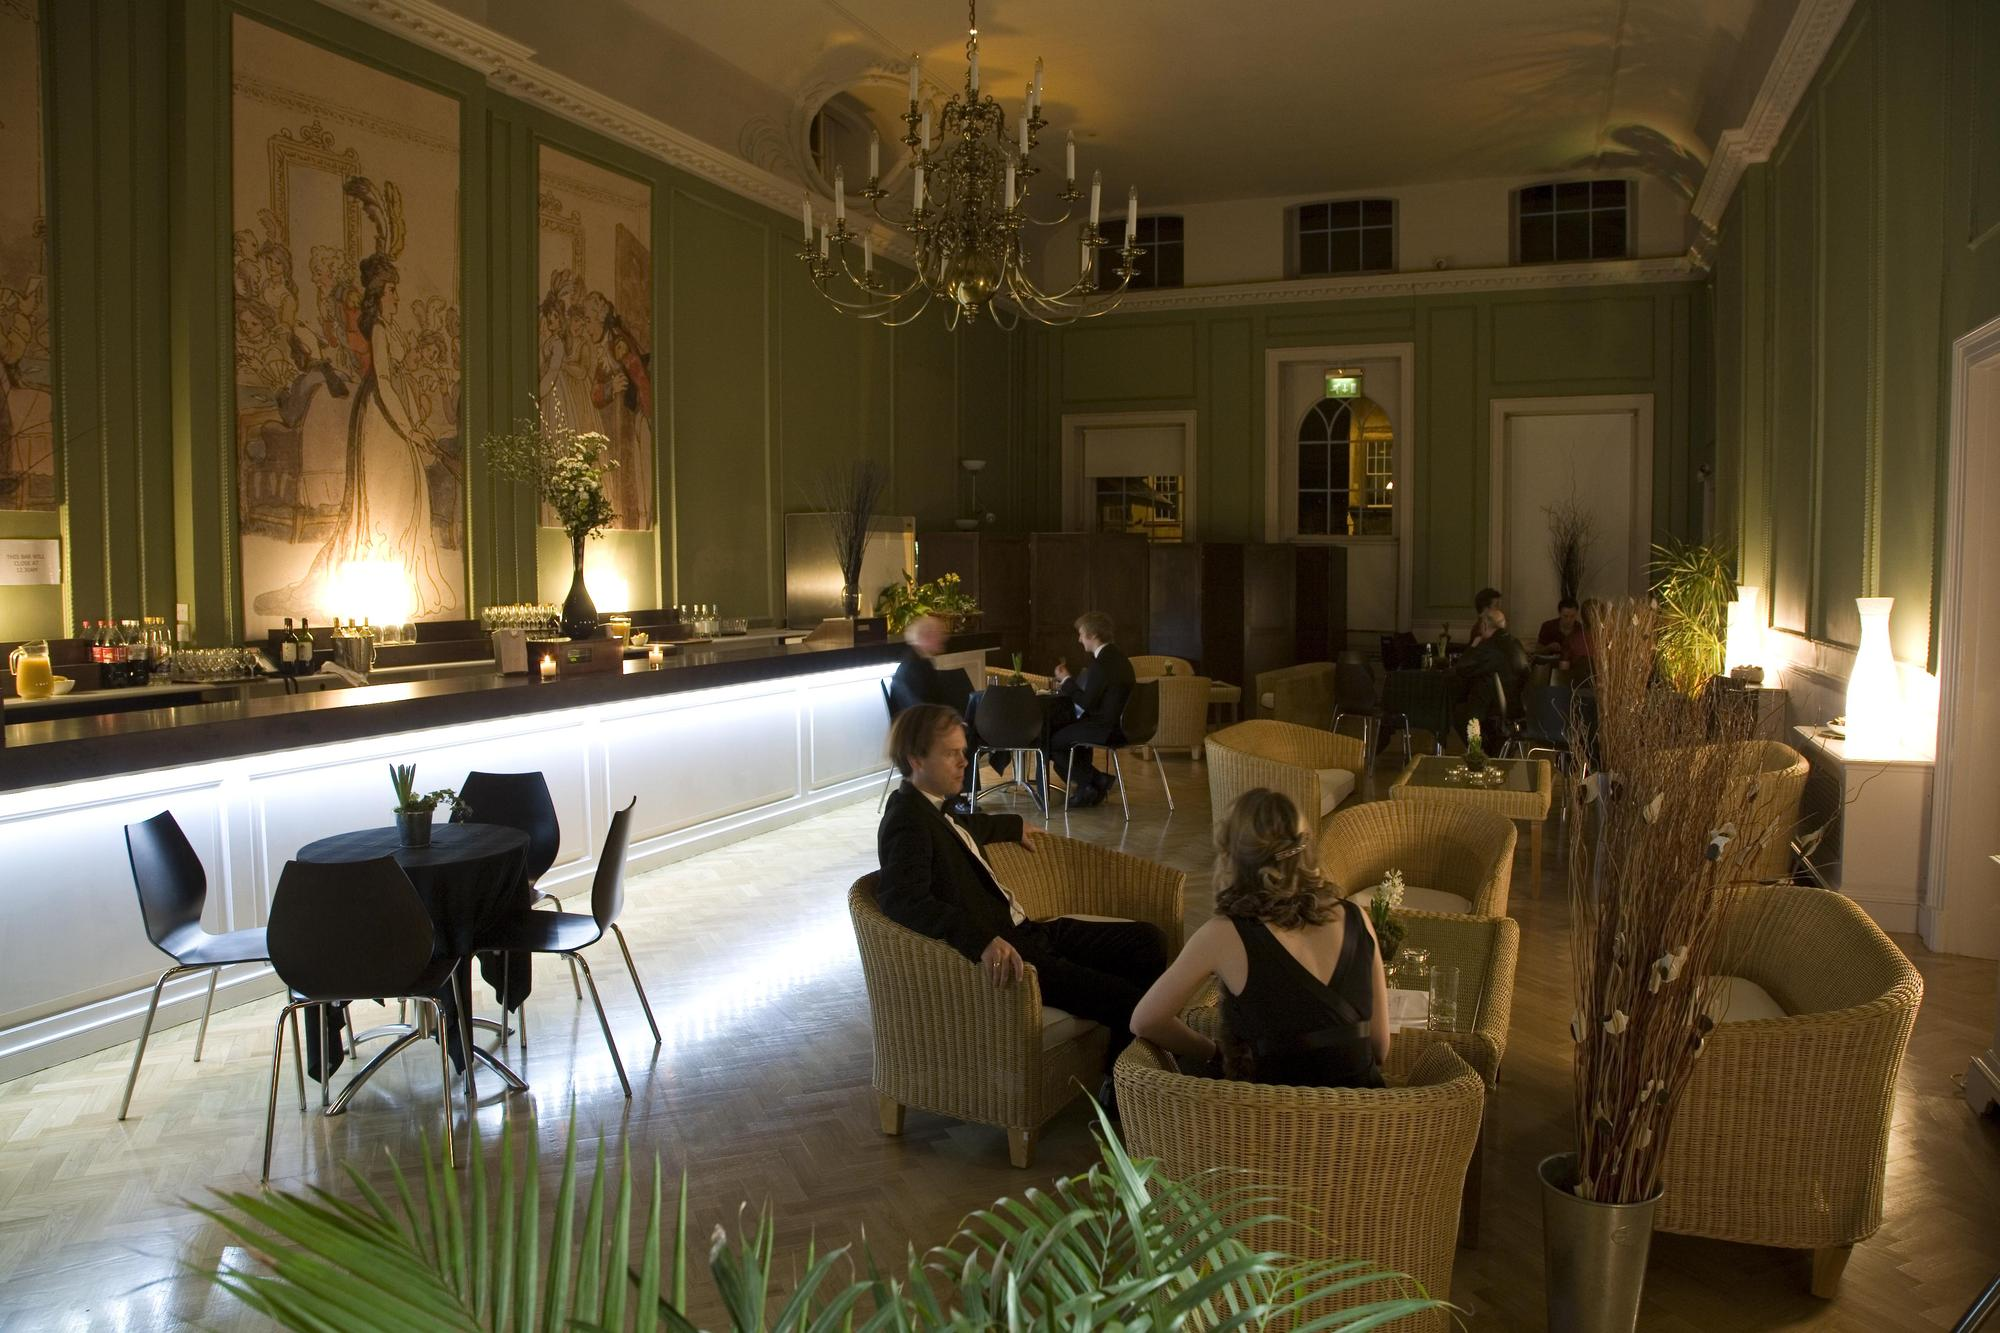 Image: Drinks in the Card Room at the Assembly Rooms